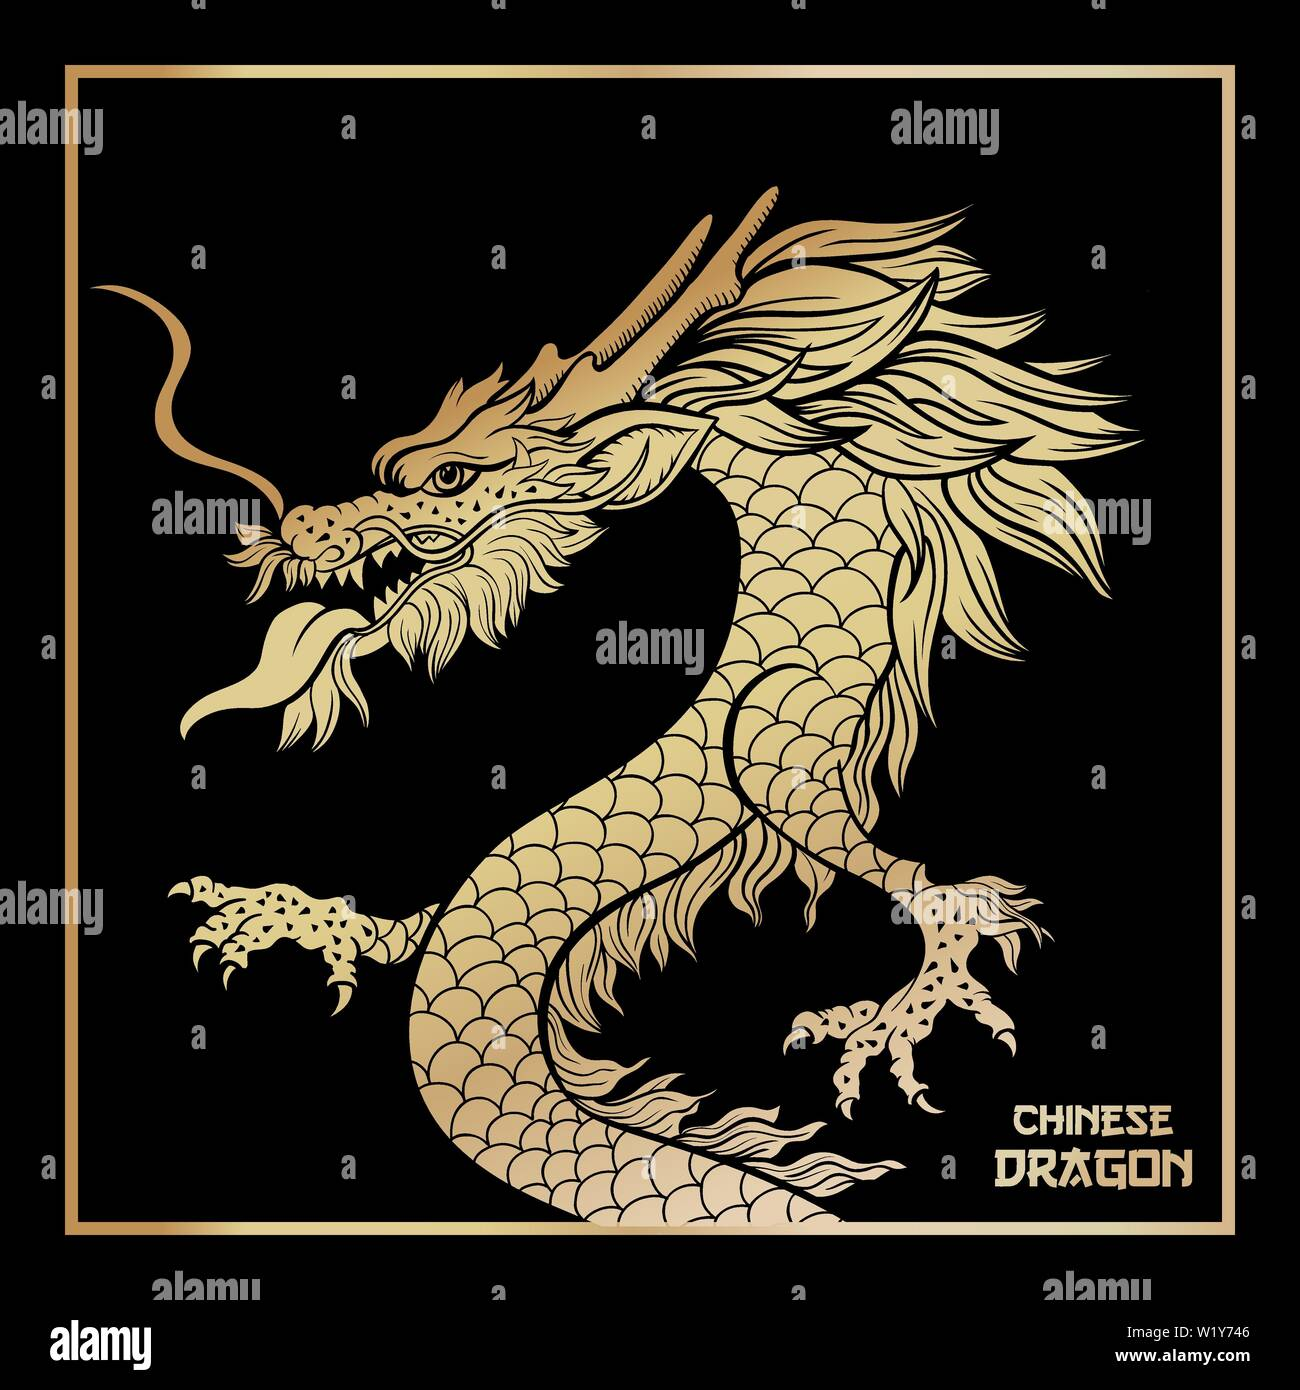 Black Background Chinese Dragon High Resolution Stock Photography And Images Alamy